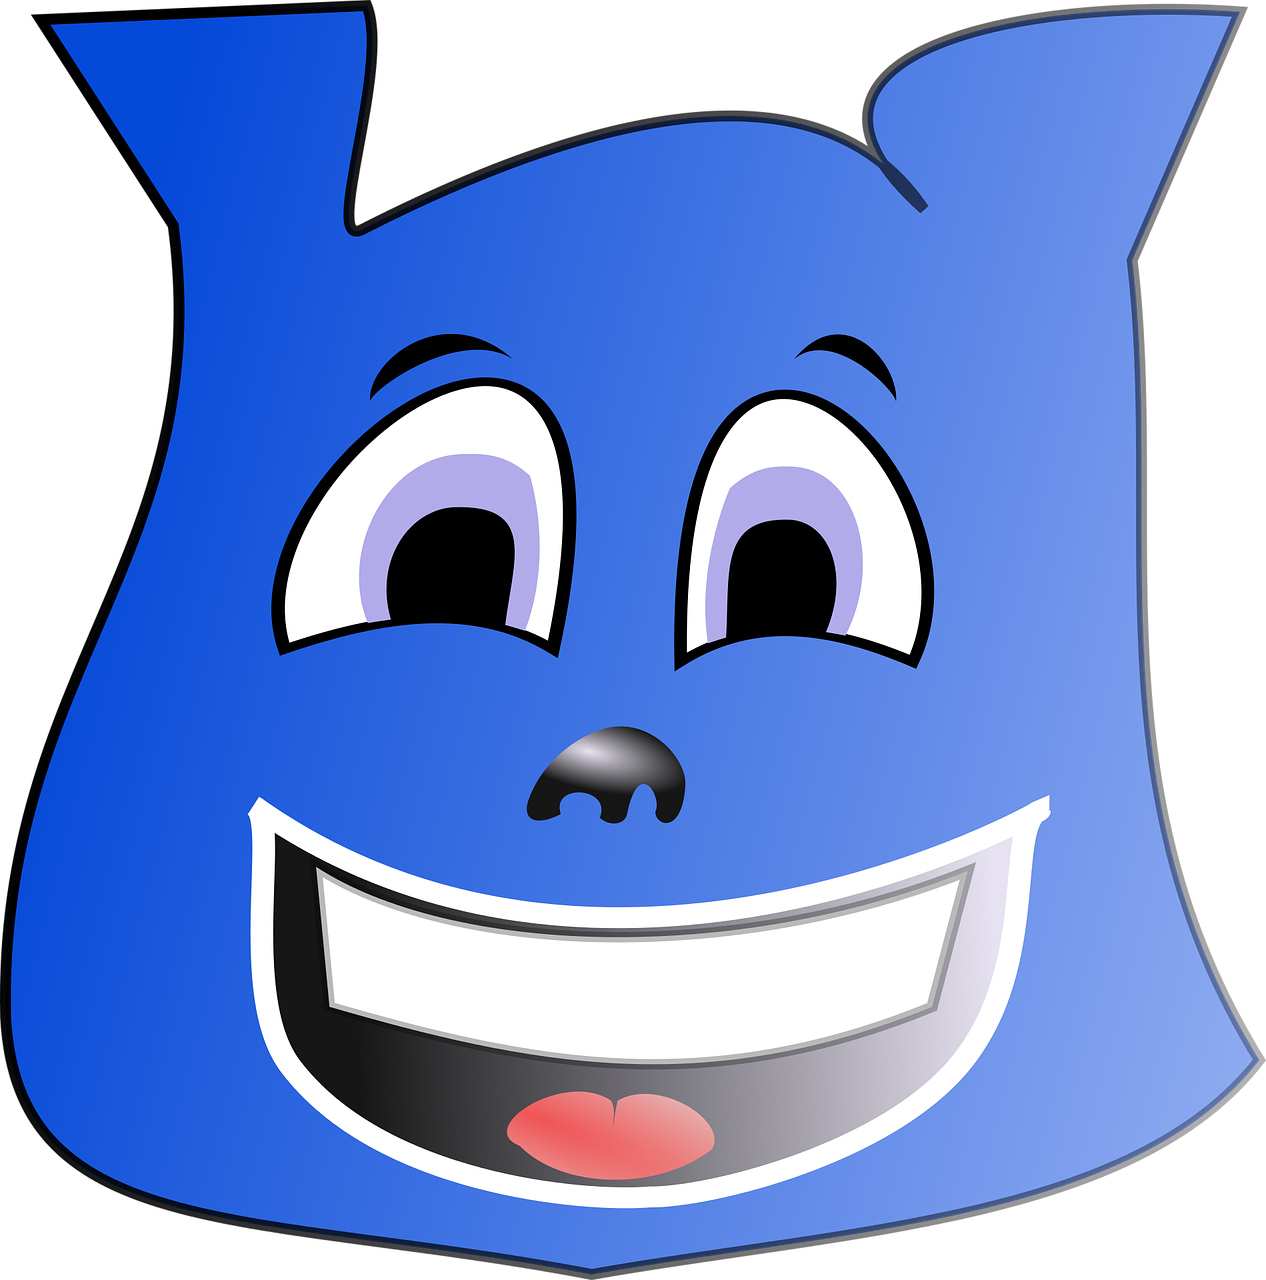 Laughter Drawing Puter Icons Emoticon Emotion Gambar